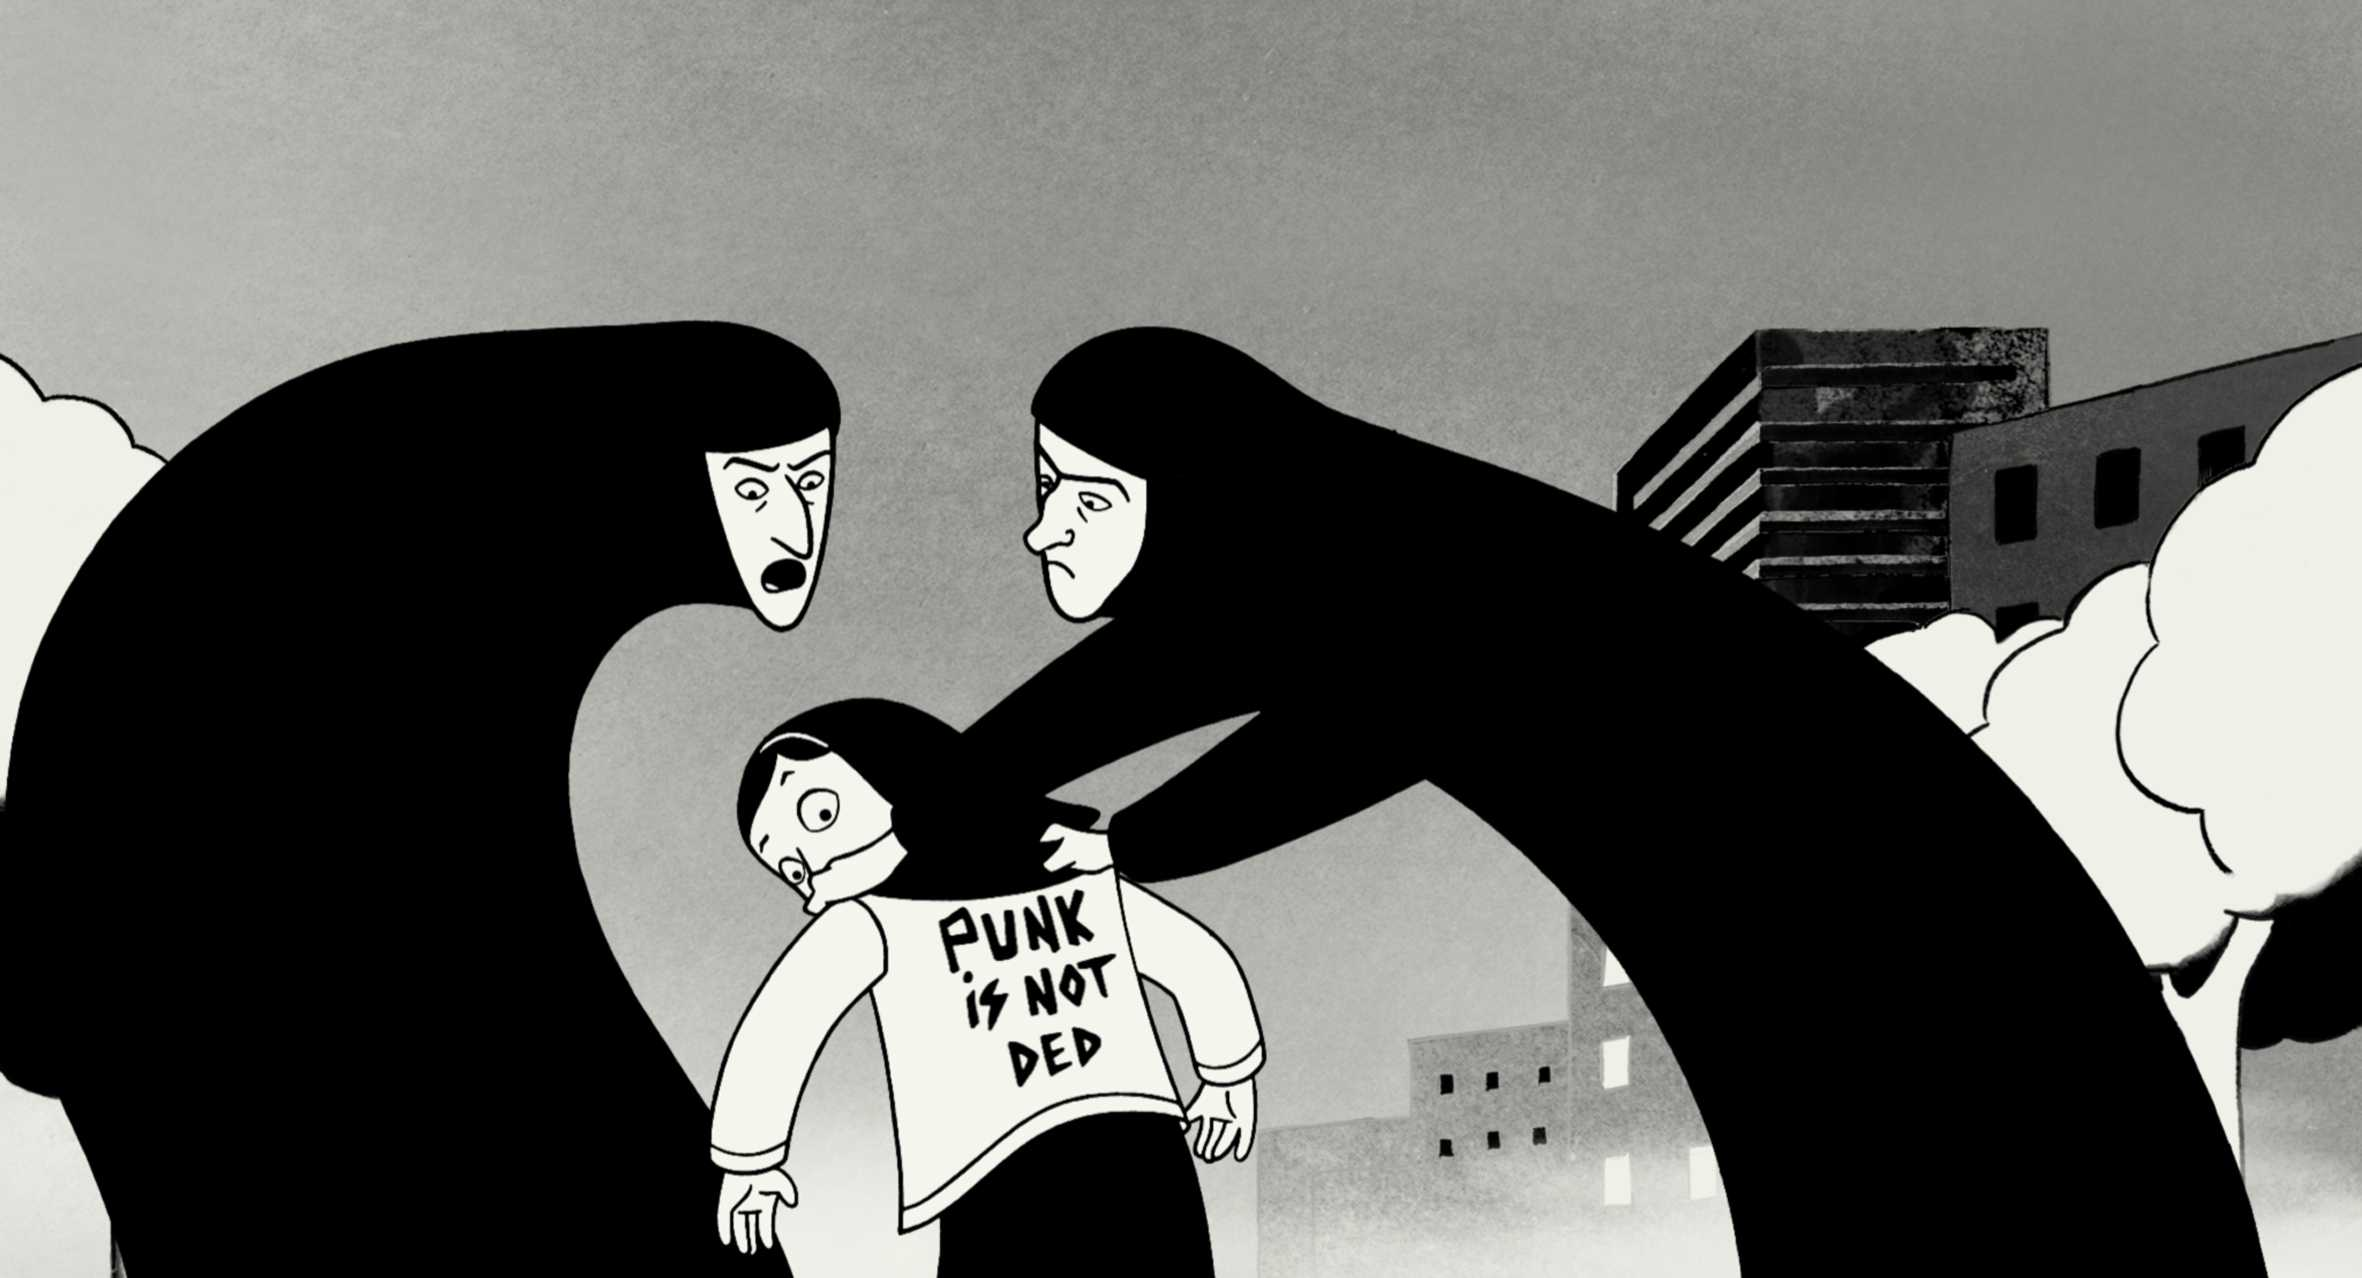 Persepolis, 2007, France & Iran. This movie should be watched by all who are interested in costume design to understand the impact outfits have in our lives.